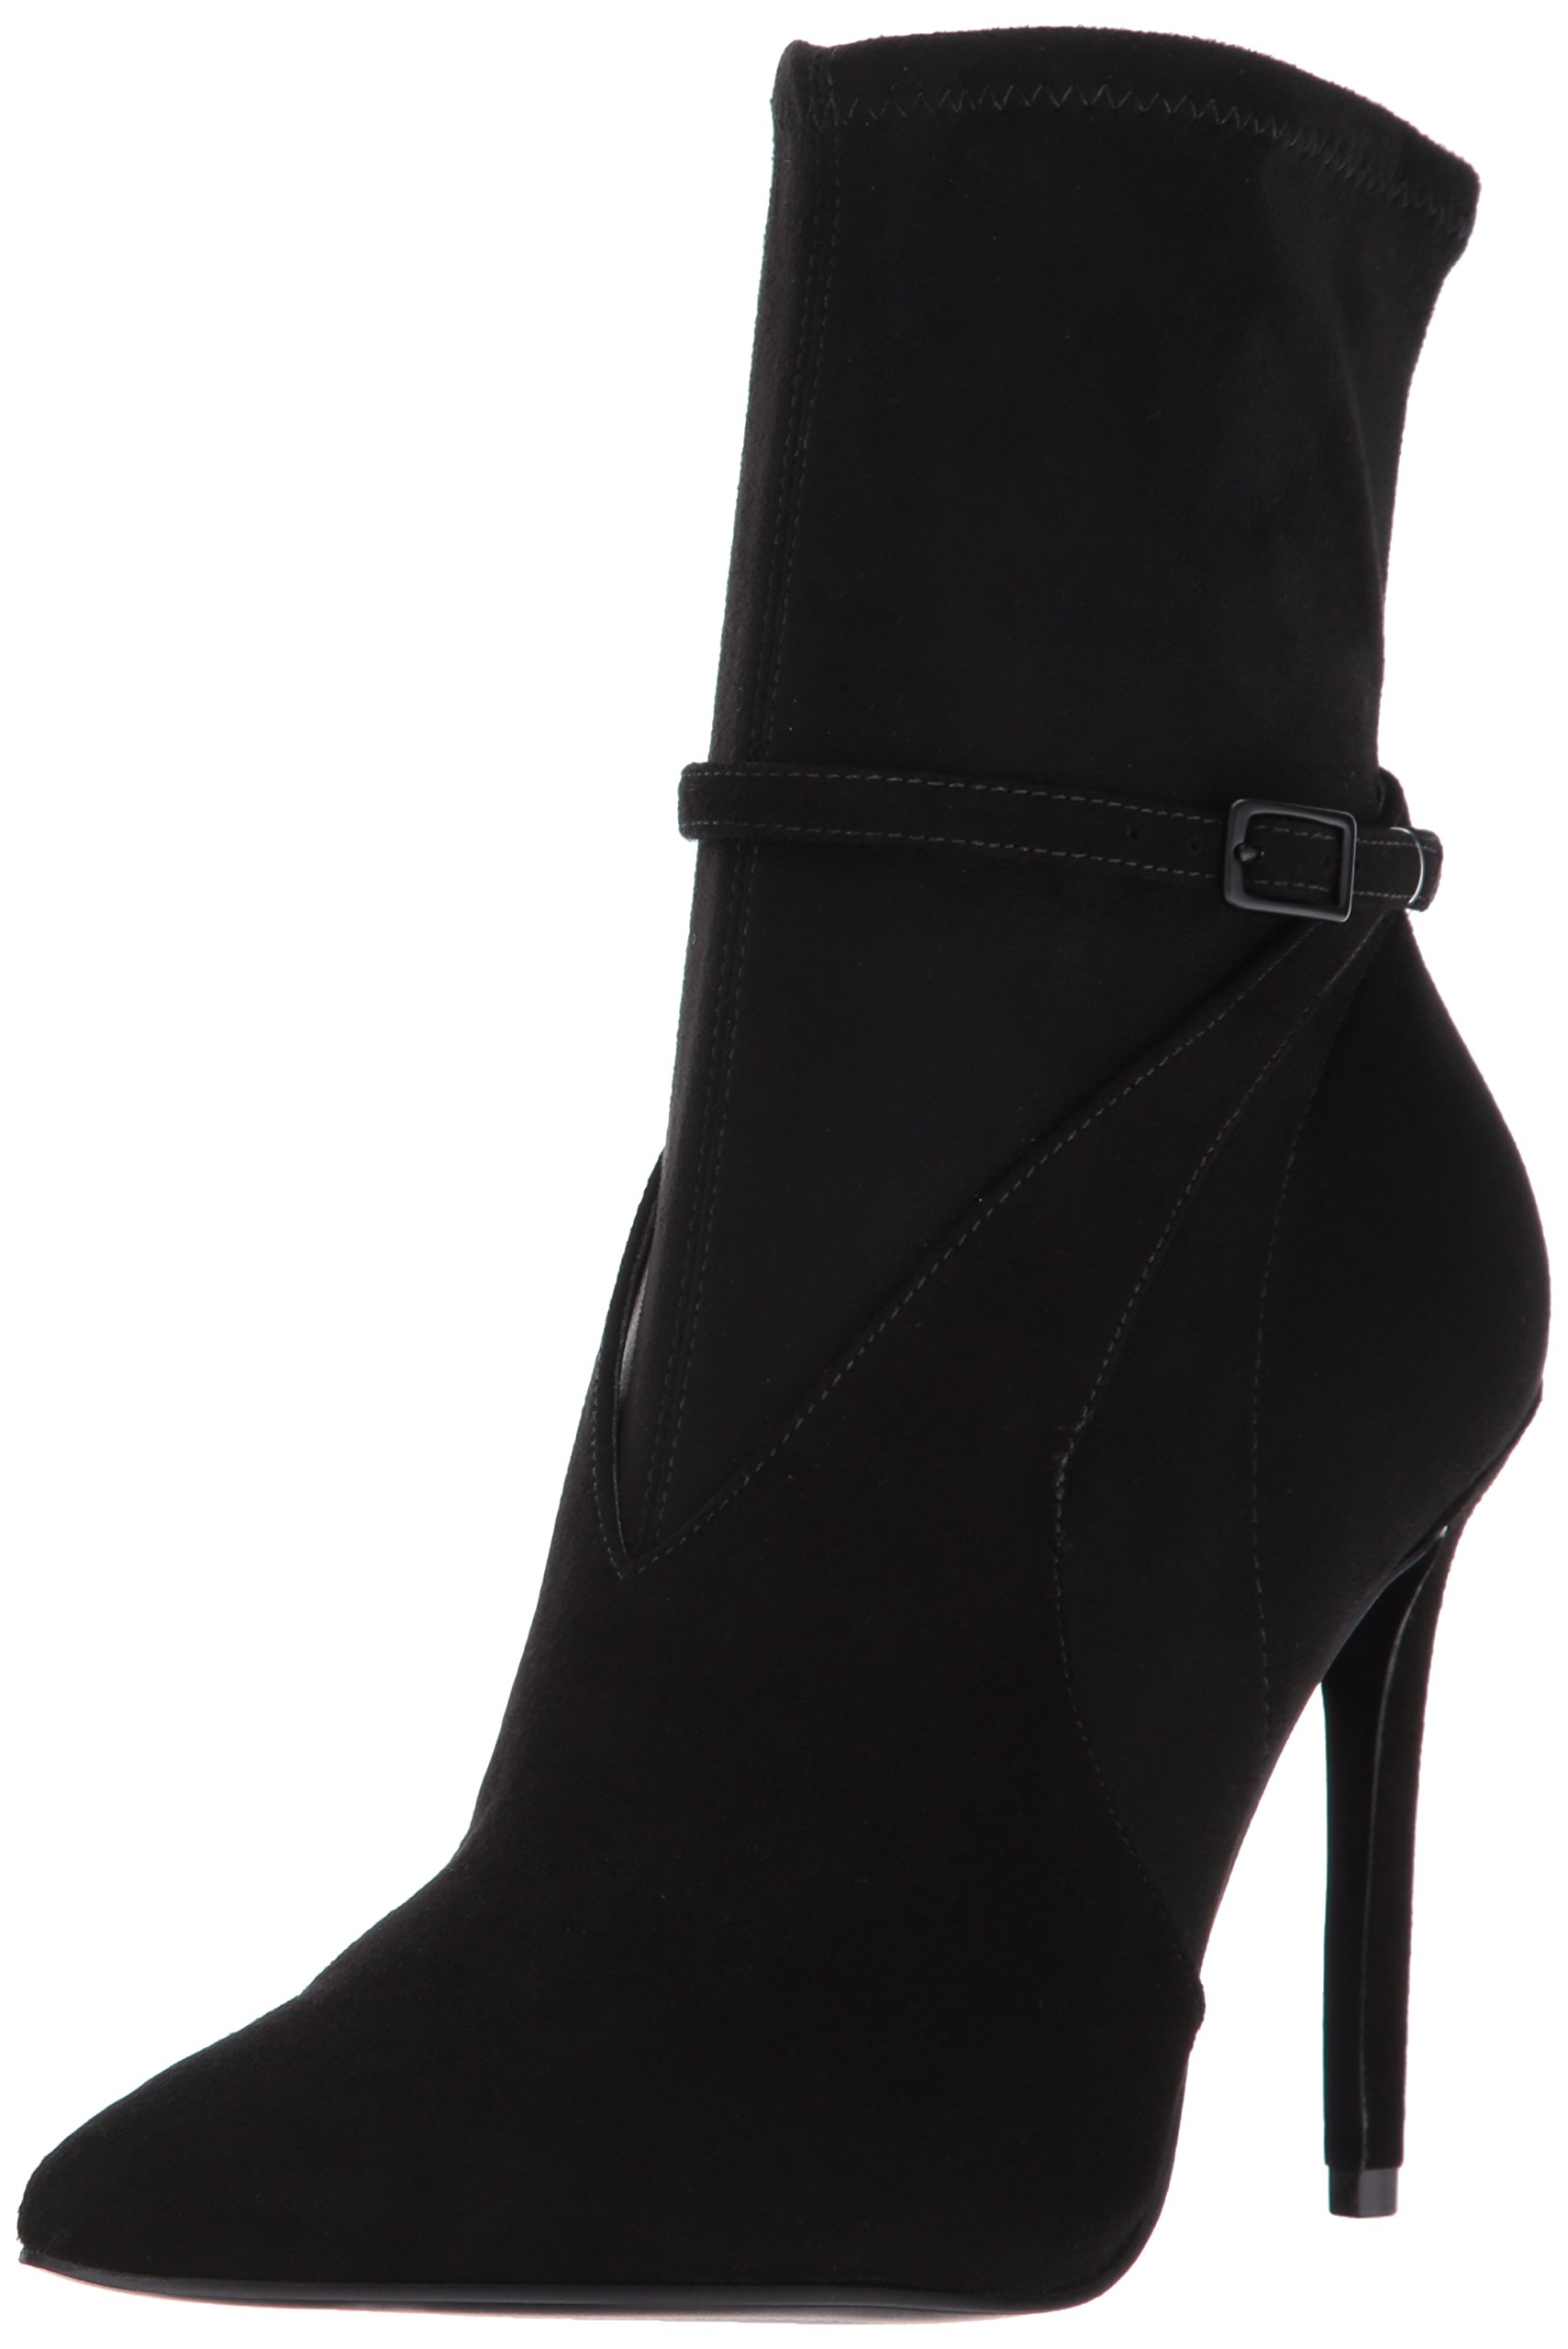 KENDALL + KYLIE Women's Autum Fashion Boot, Black/Black, 6 Medium US